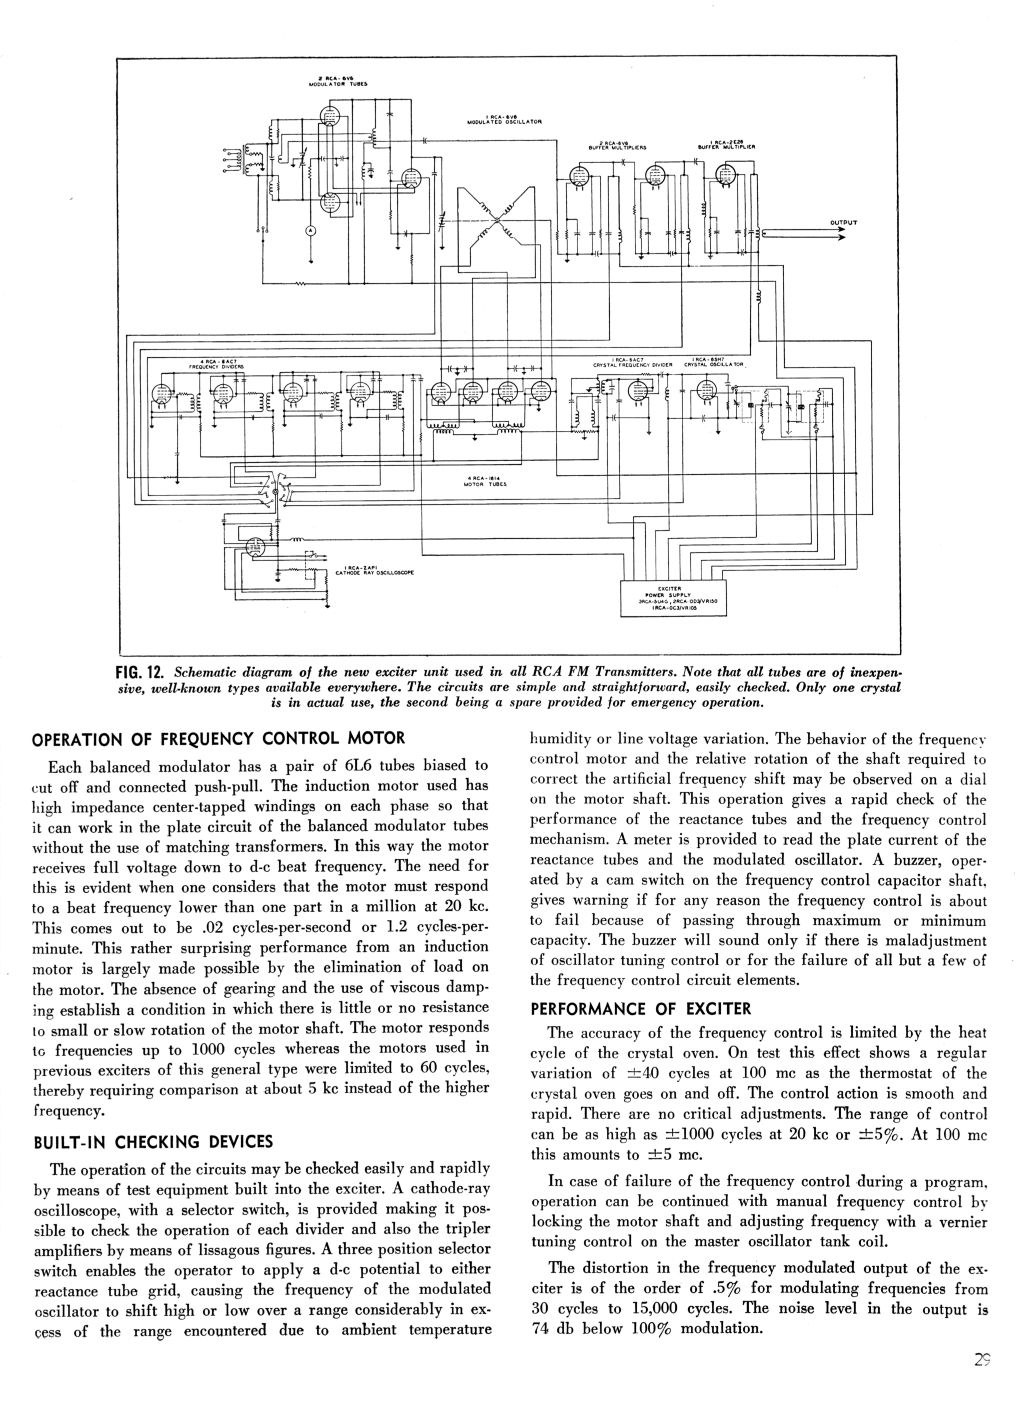 RCA MI-7015 Direct FM Exciter, page 6